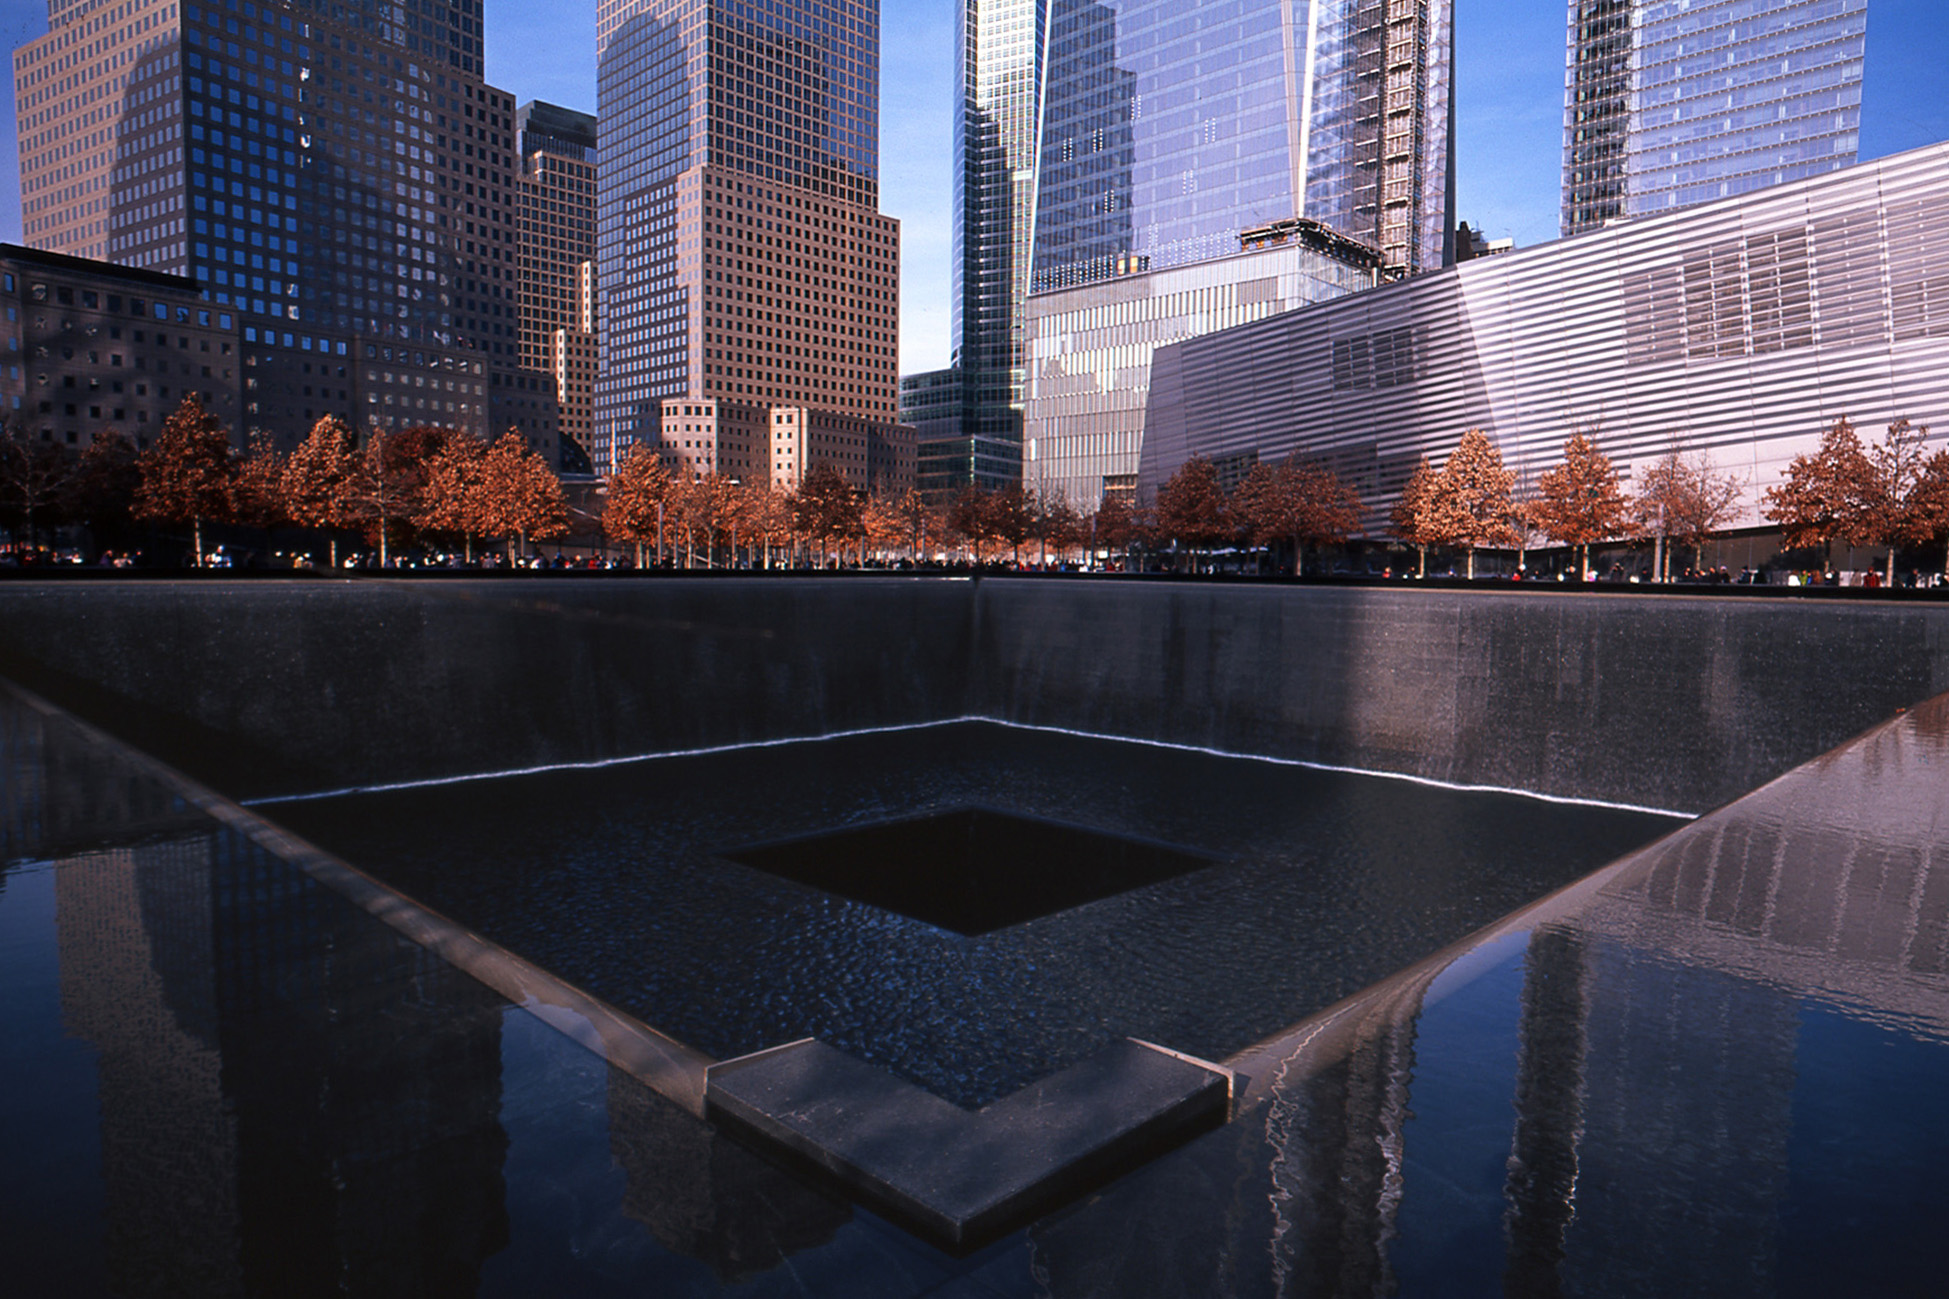 9 11 memorial Ground zero and 9/11 memorial tours tours of 9/11 memorial, 9/11 museum tickets, and one world observatory access included.